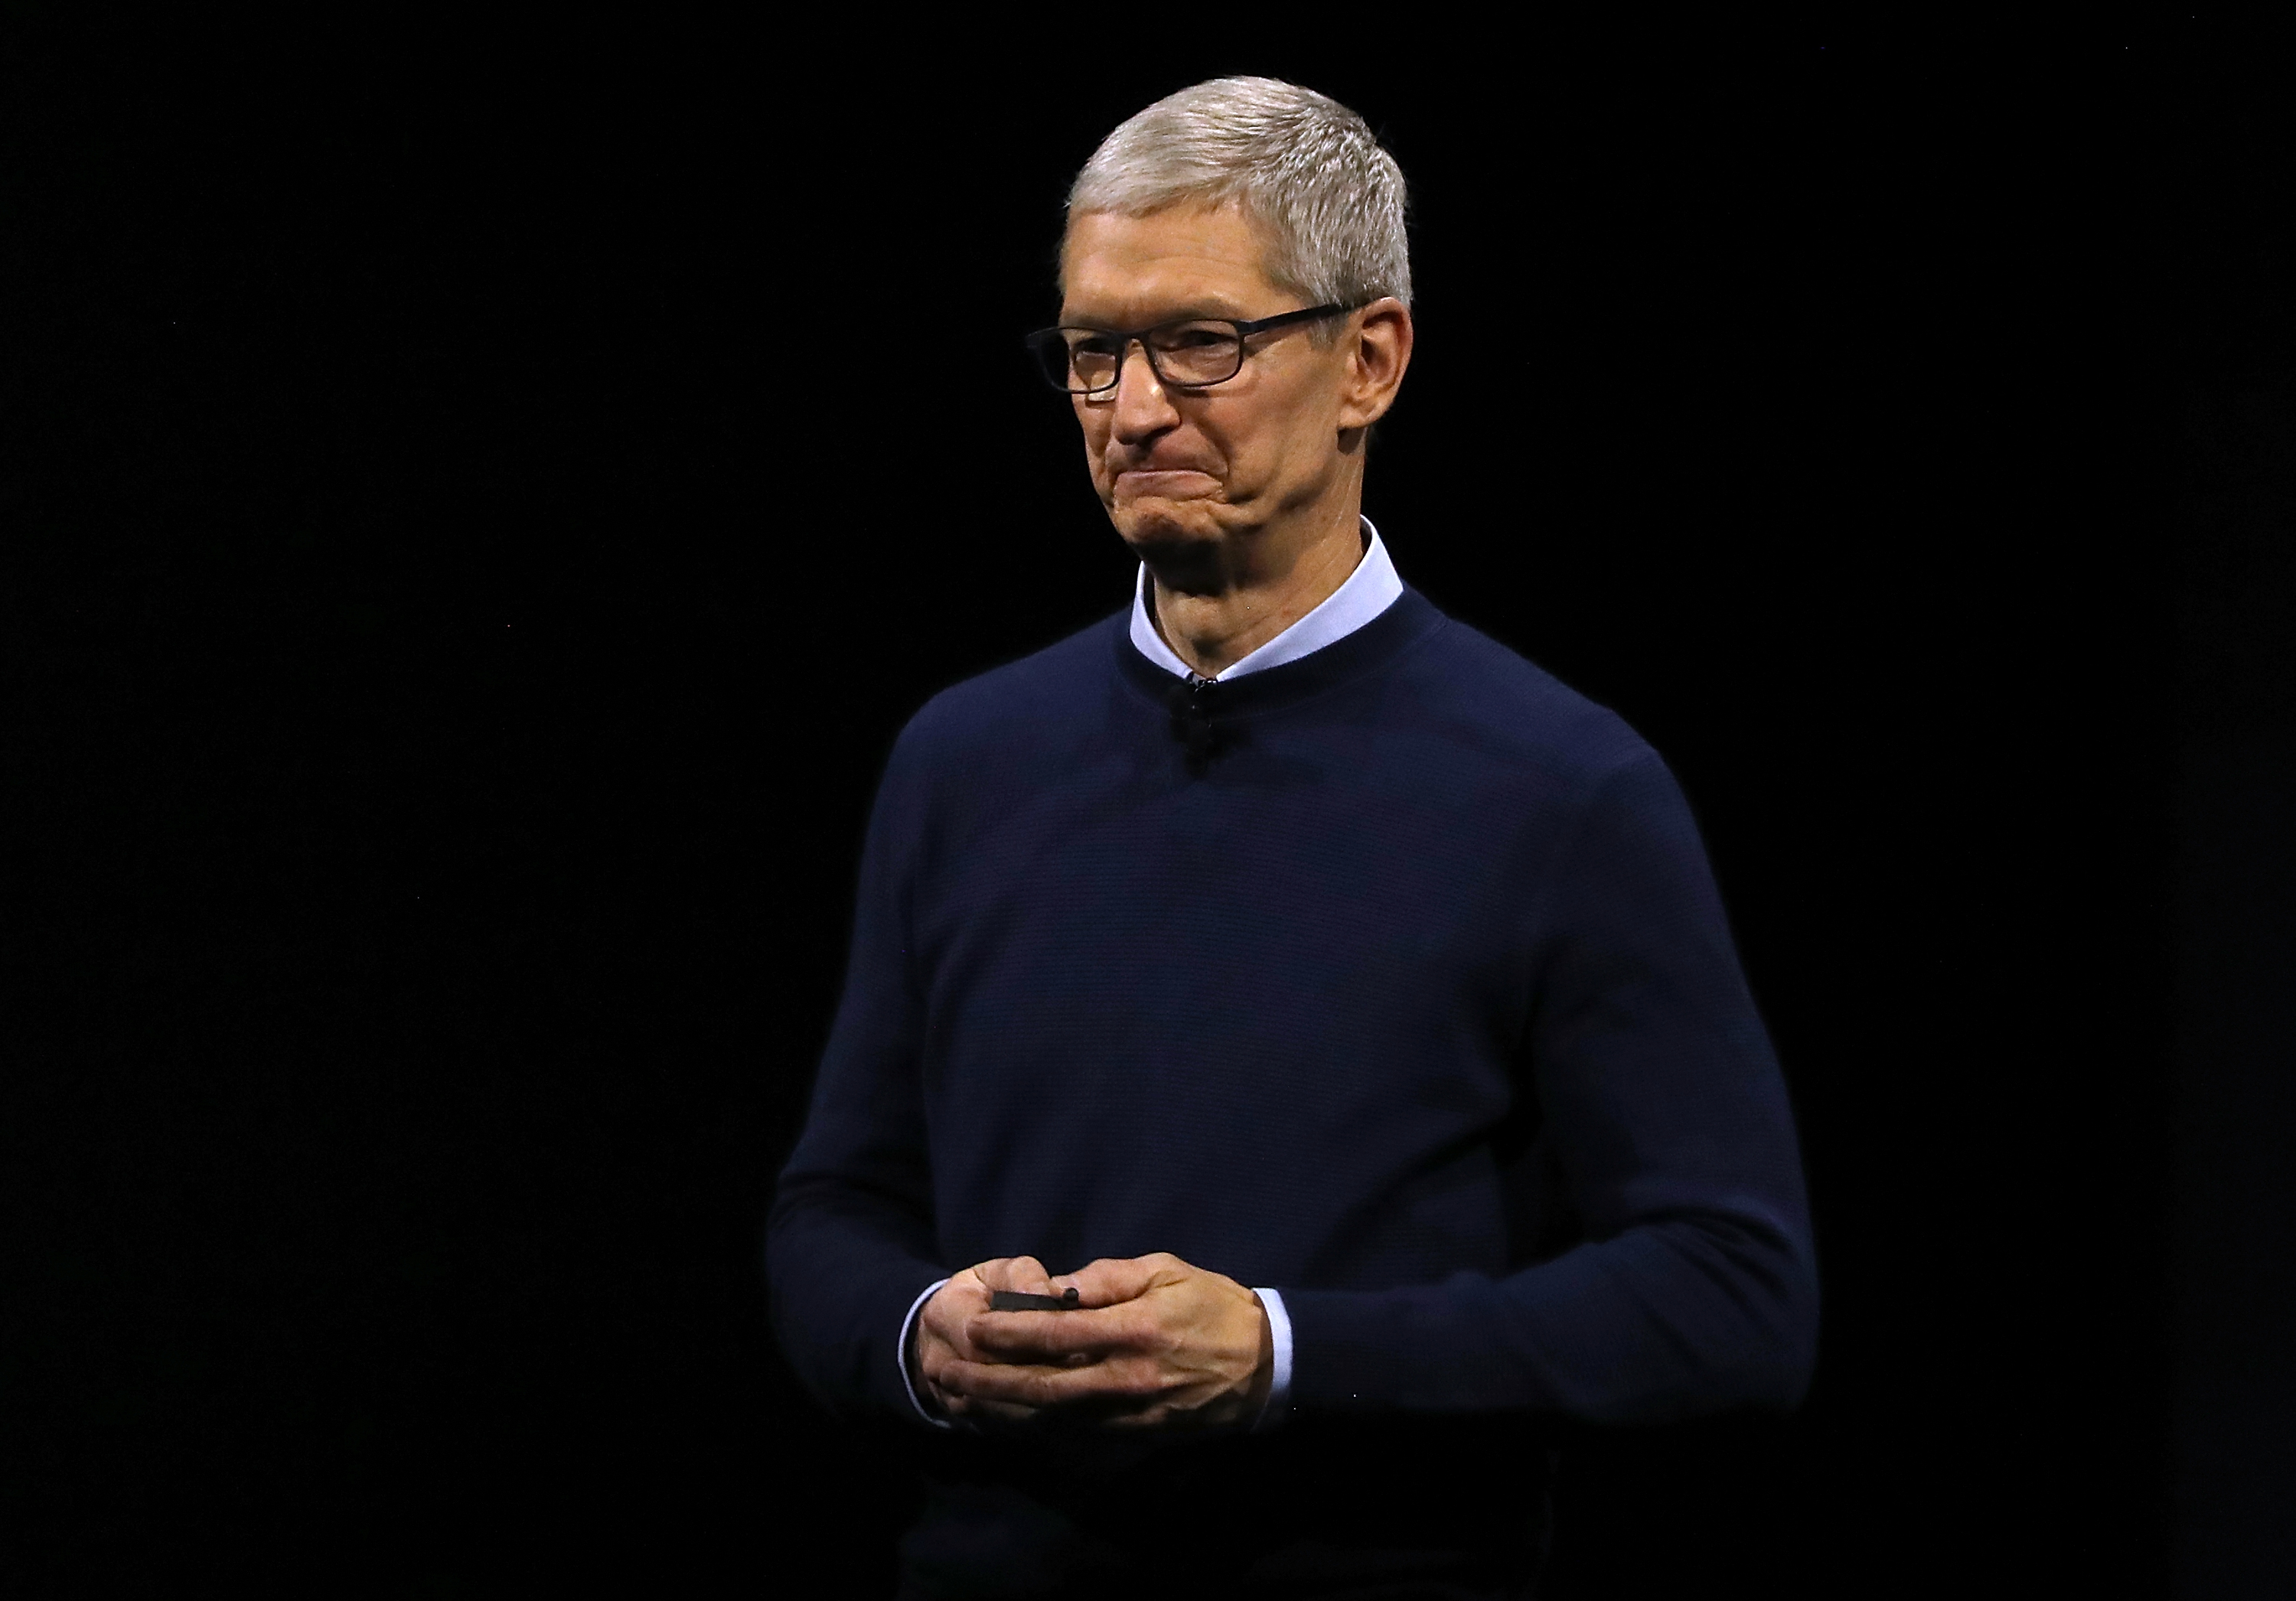 Apple CEO Tim Cook delivers the opening keynote address the 2017 Apple Worldwide Developer Conference (WWDC) at the San Jose Convention Center on June 5, 2017 in San Jose, California.